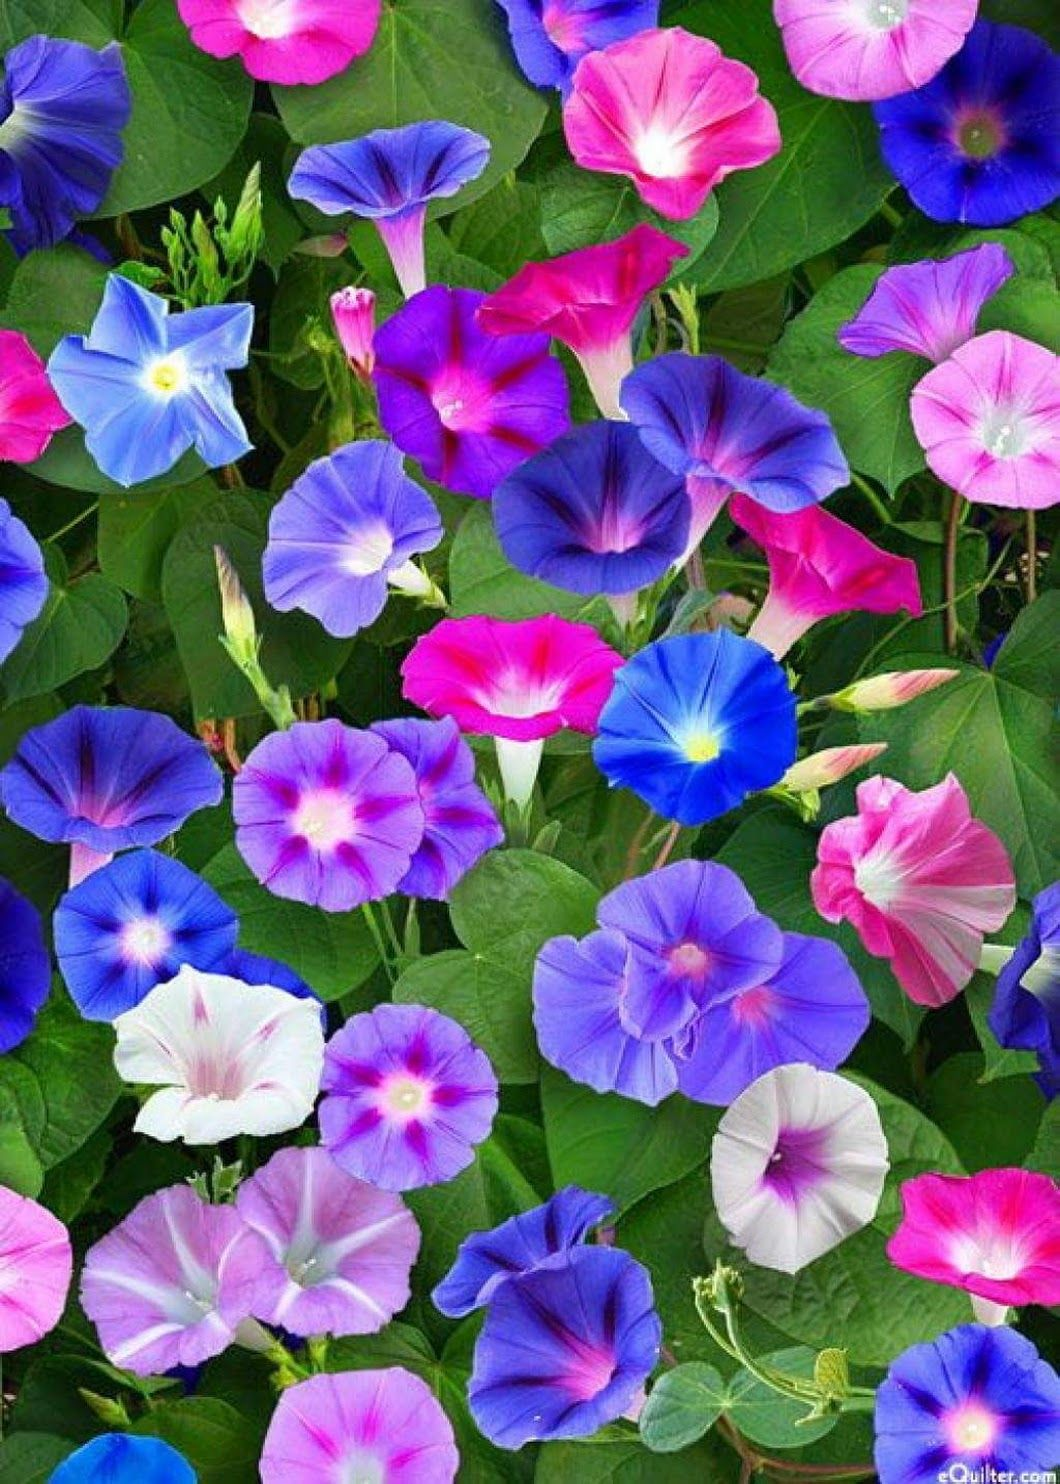 Sign In Morning Glory Flowers Flowers Nature Beautiful Flowers